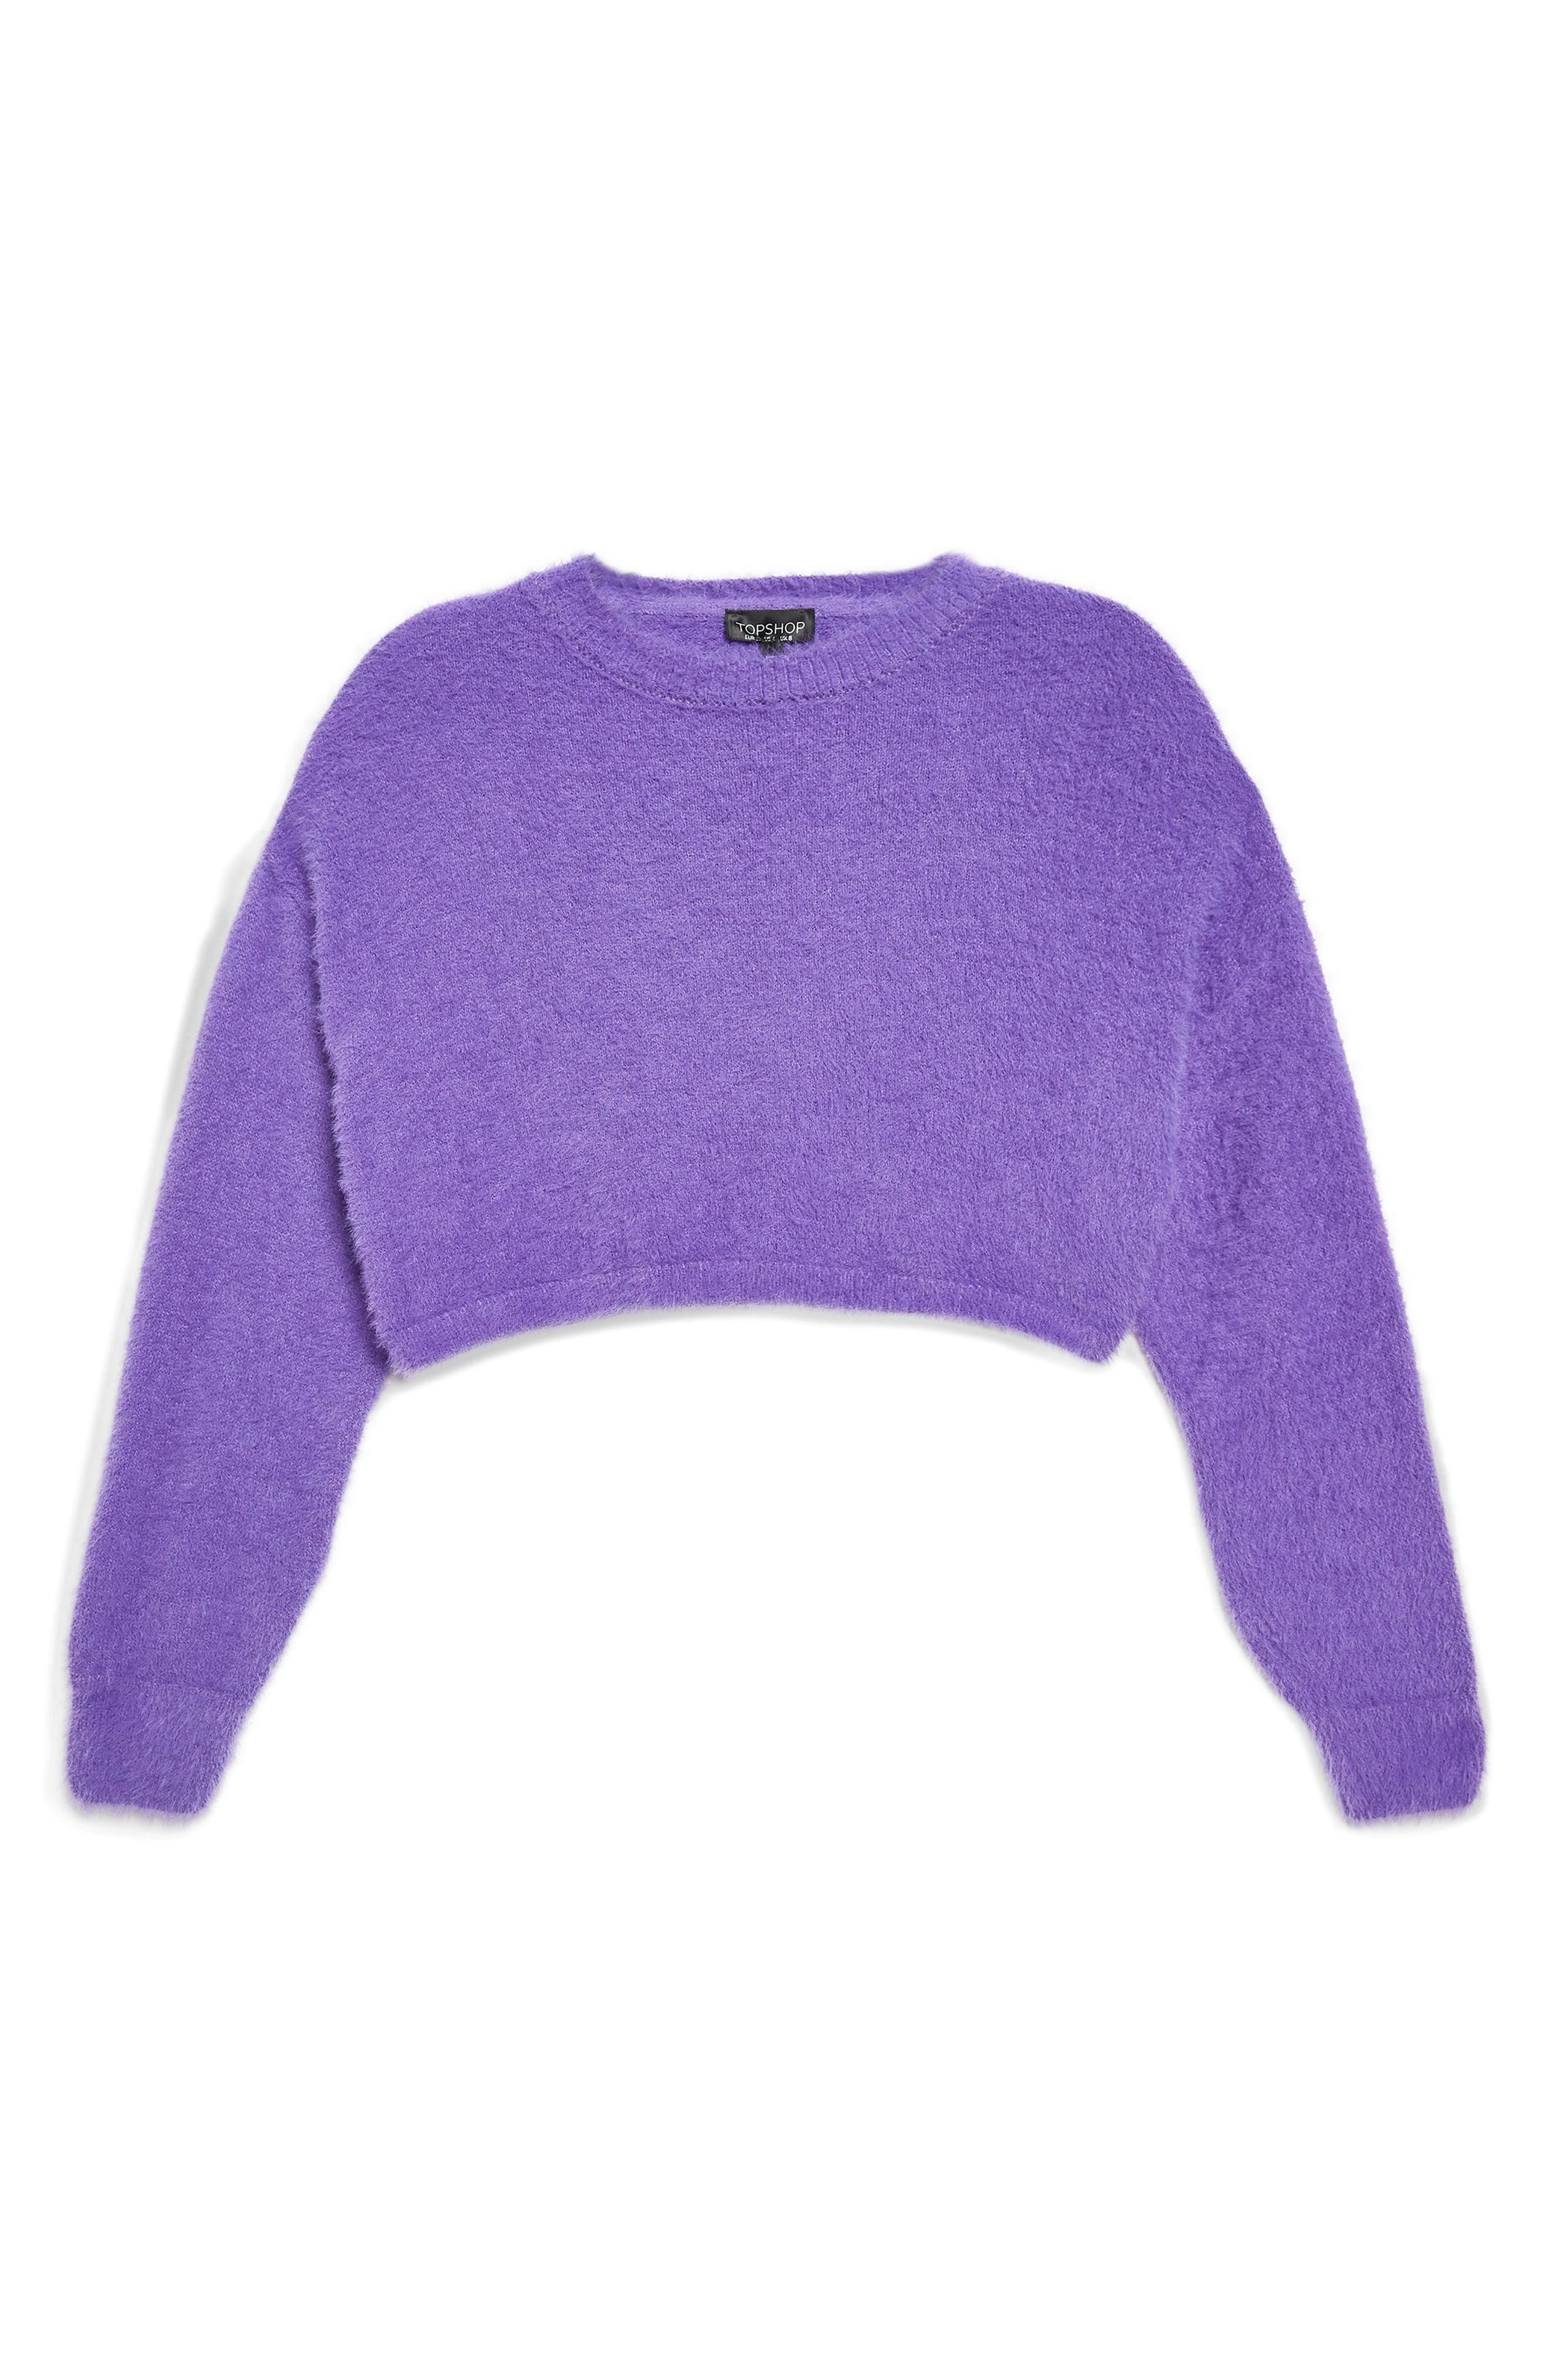 Fluffy Crop Sweater,                             Alternate thumbnail 5, color,                             500